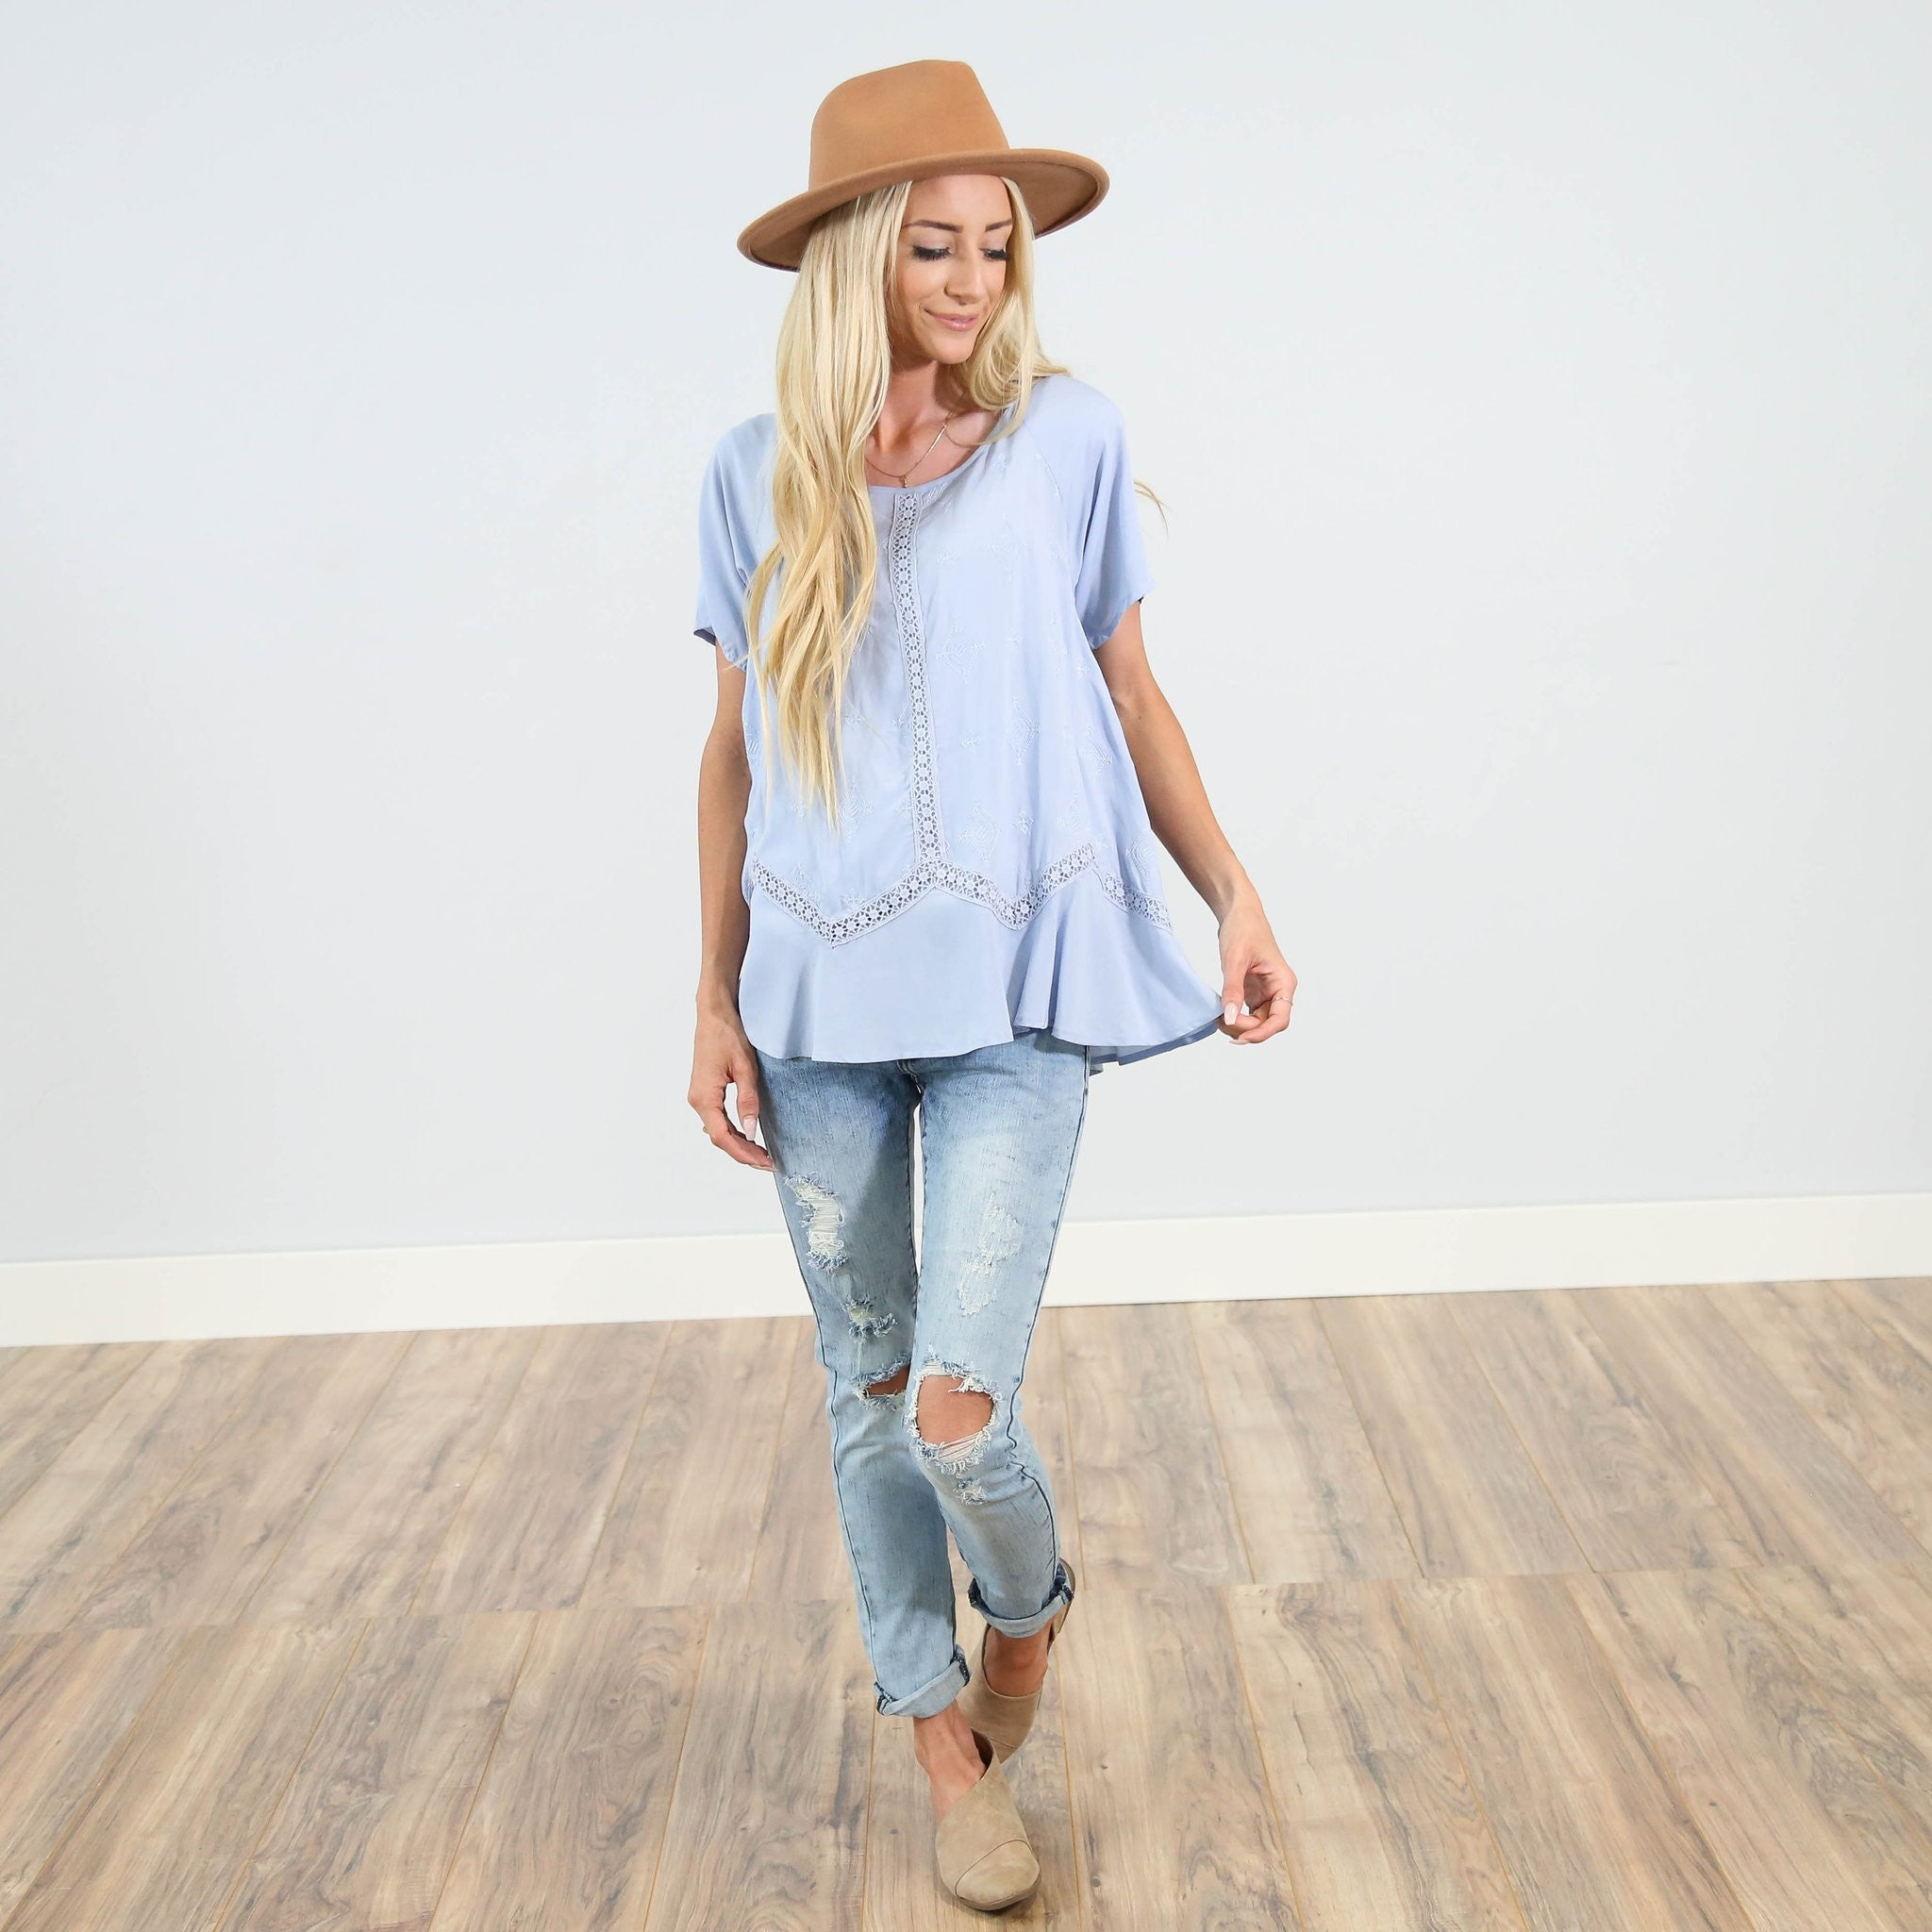 Serenade Top in Dusty Blue